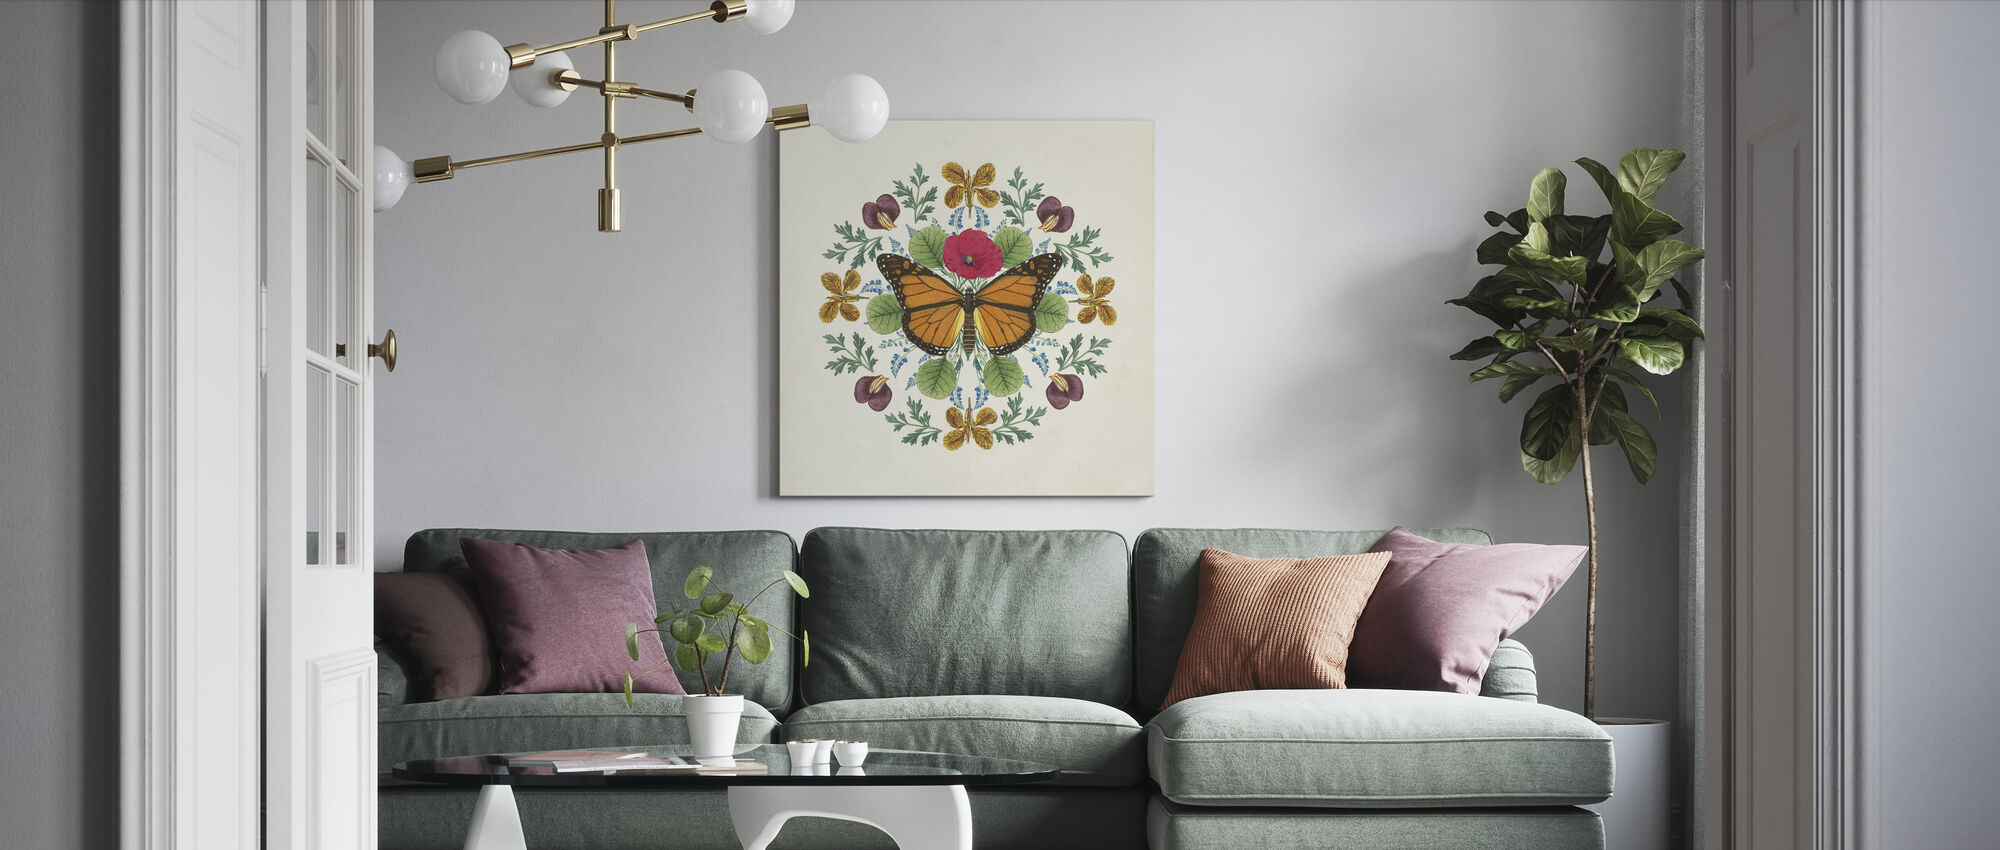 Butterfly Mandala - Canvas print - Living Room